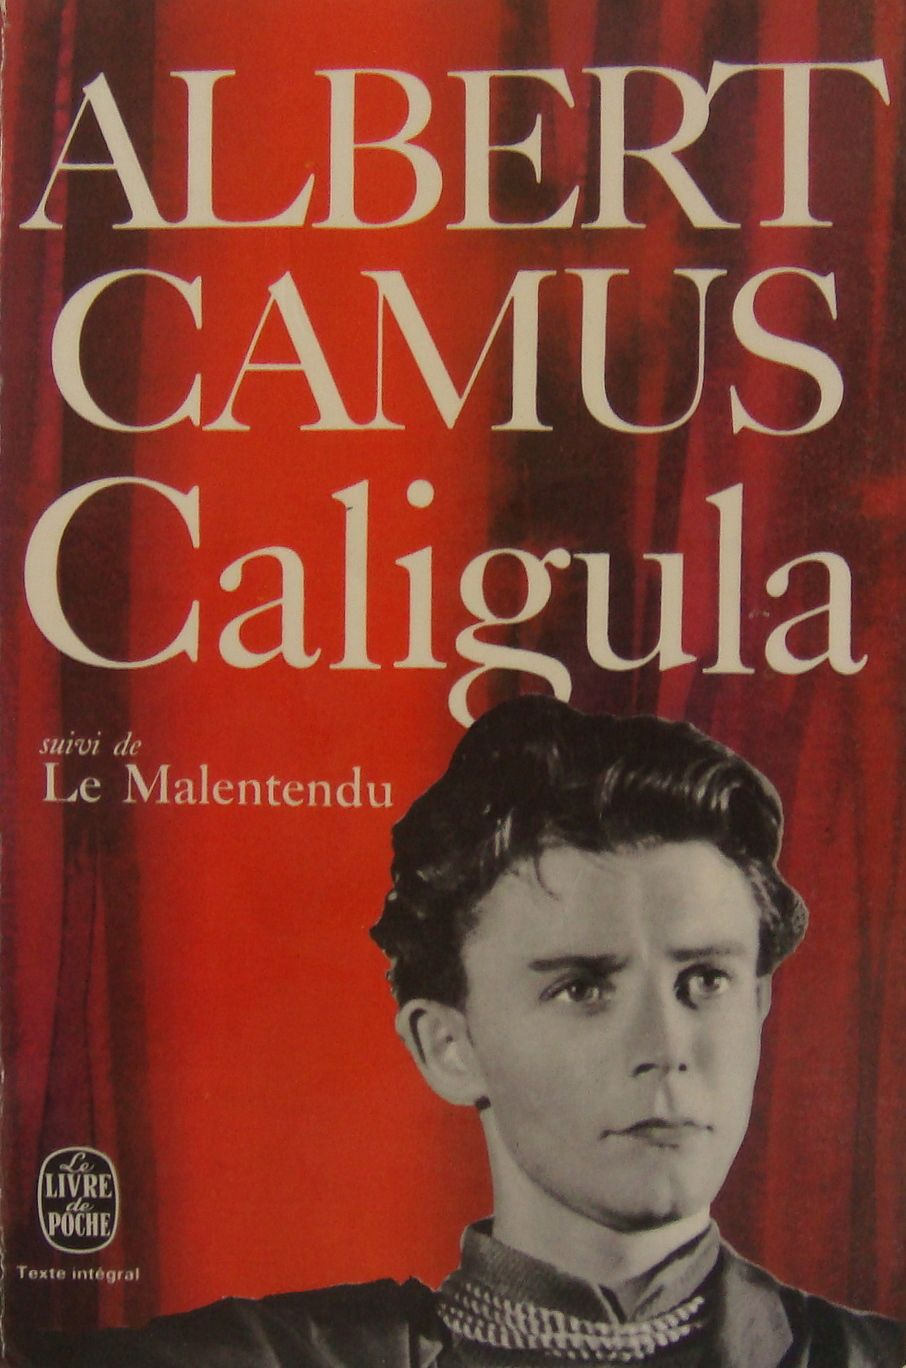 Albert Camus Caligula French Bookstore Albert Camus